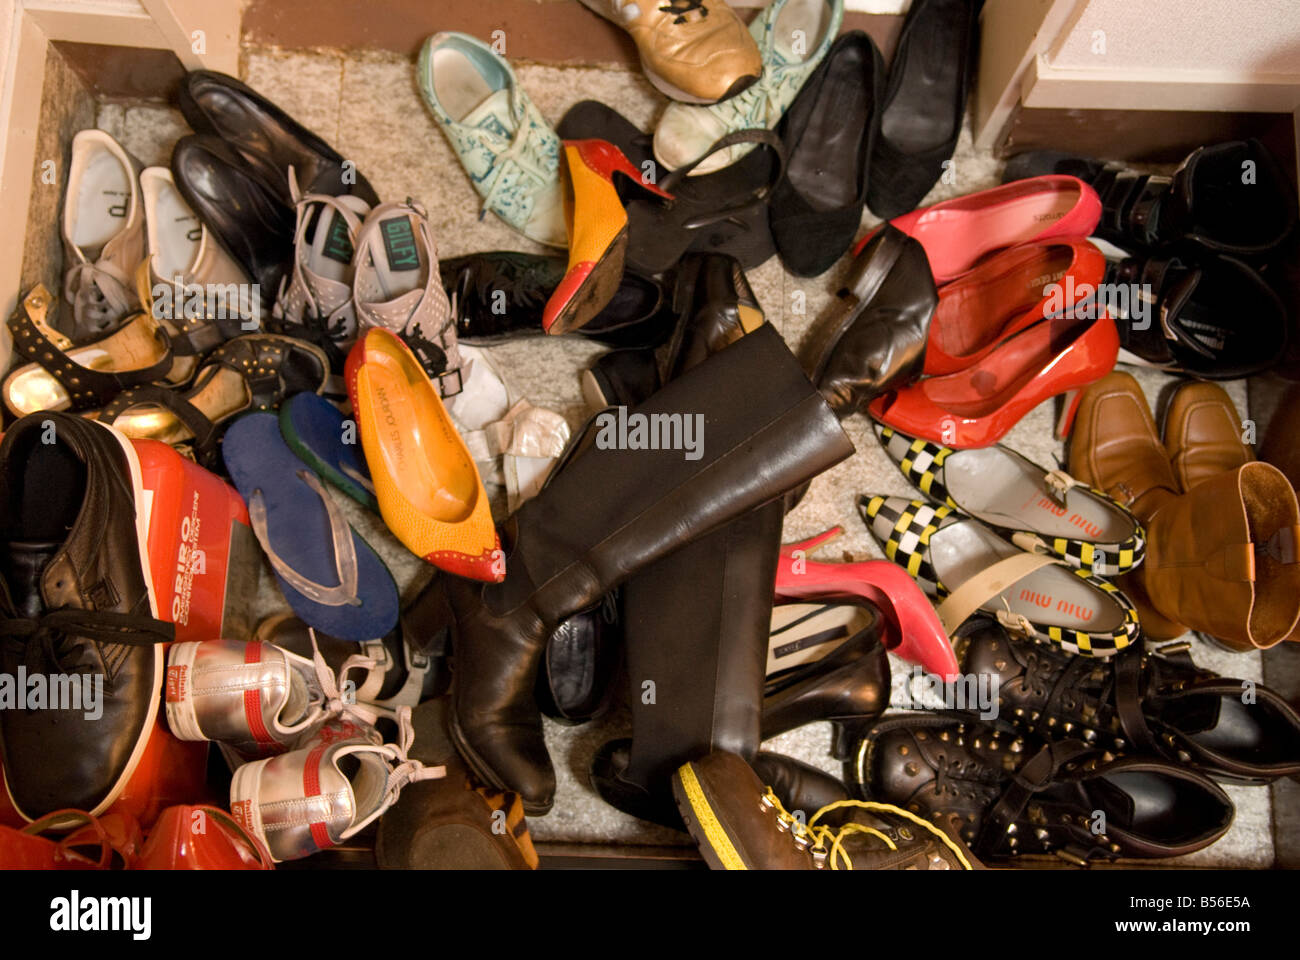 Shoes at a party in Tokyo. - Stock Image